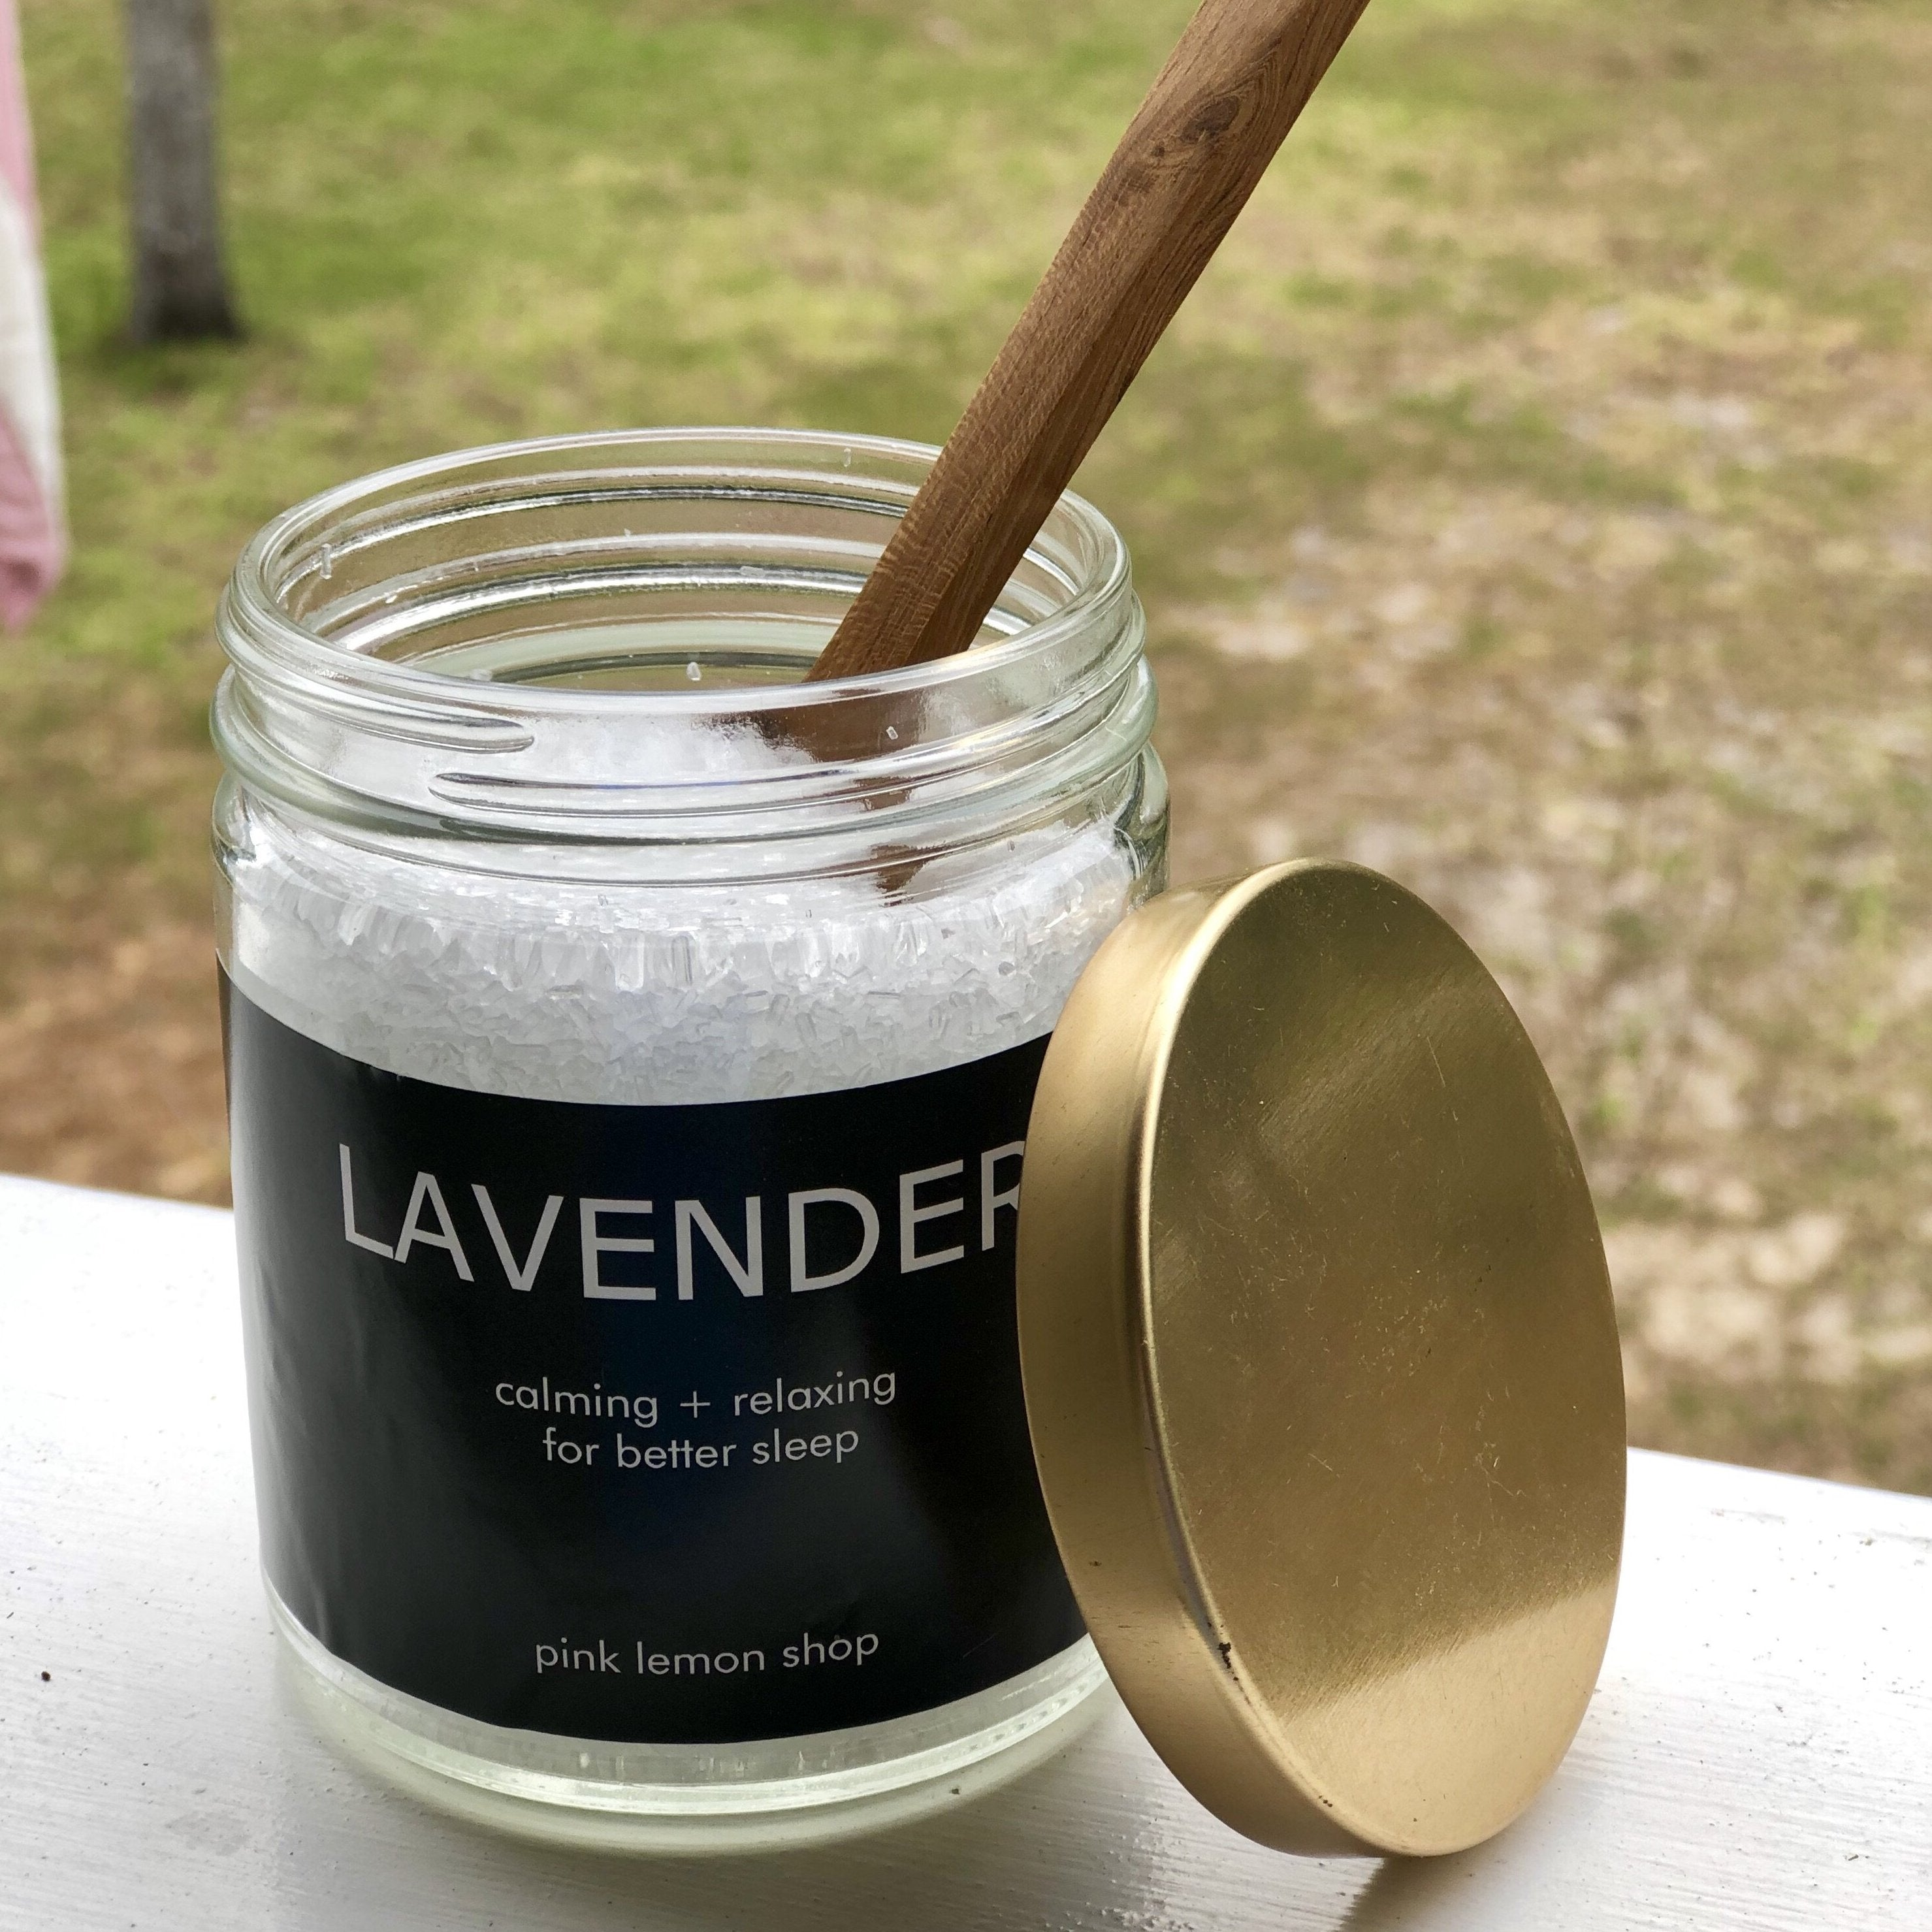 Lavender smelling bath salt in a glass jar with a wooden spoon